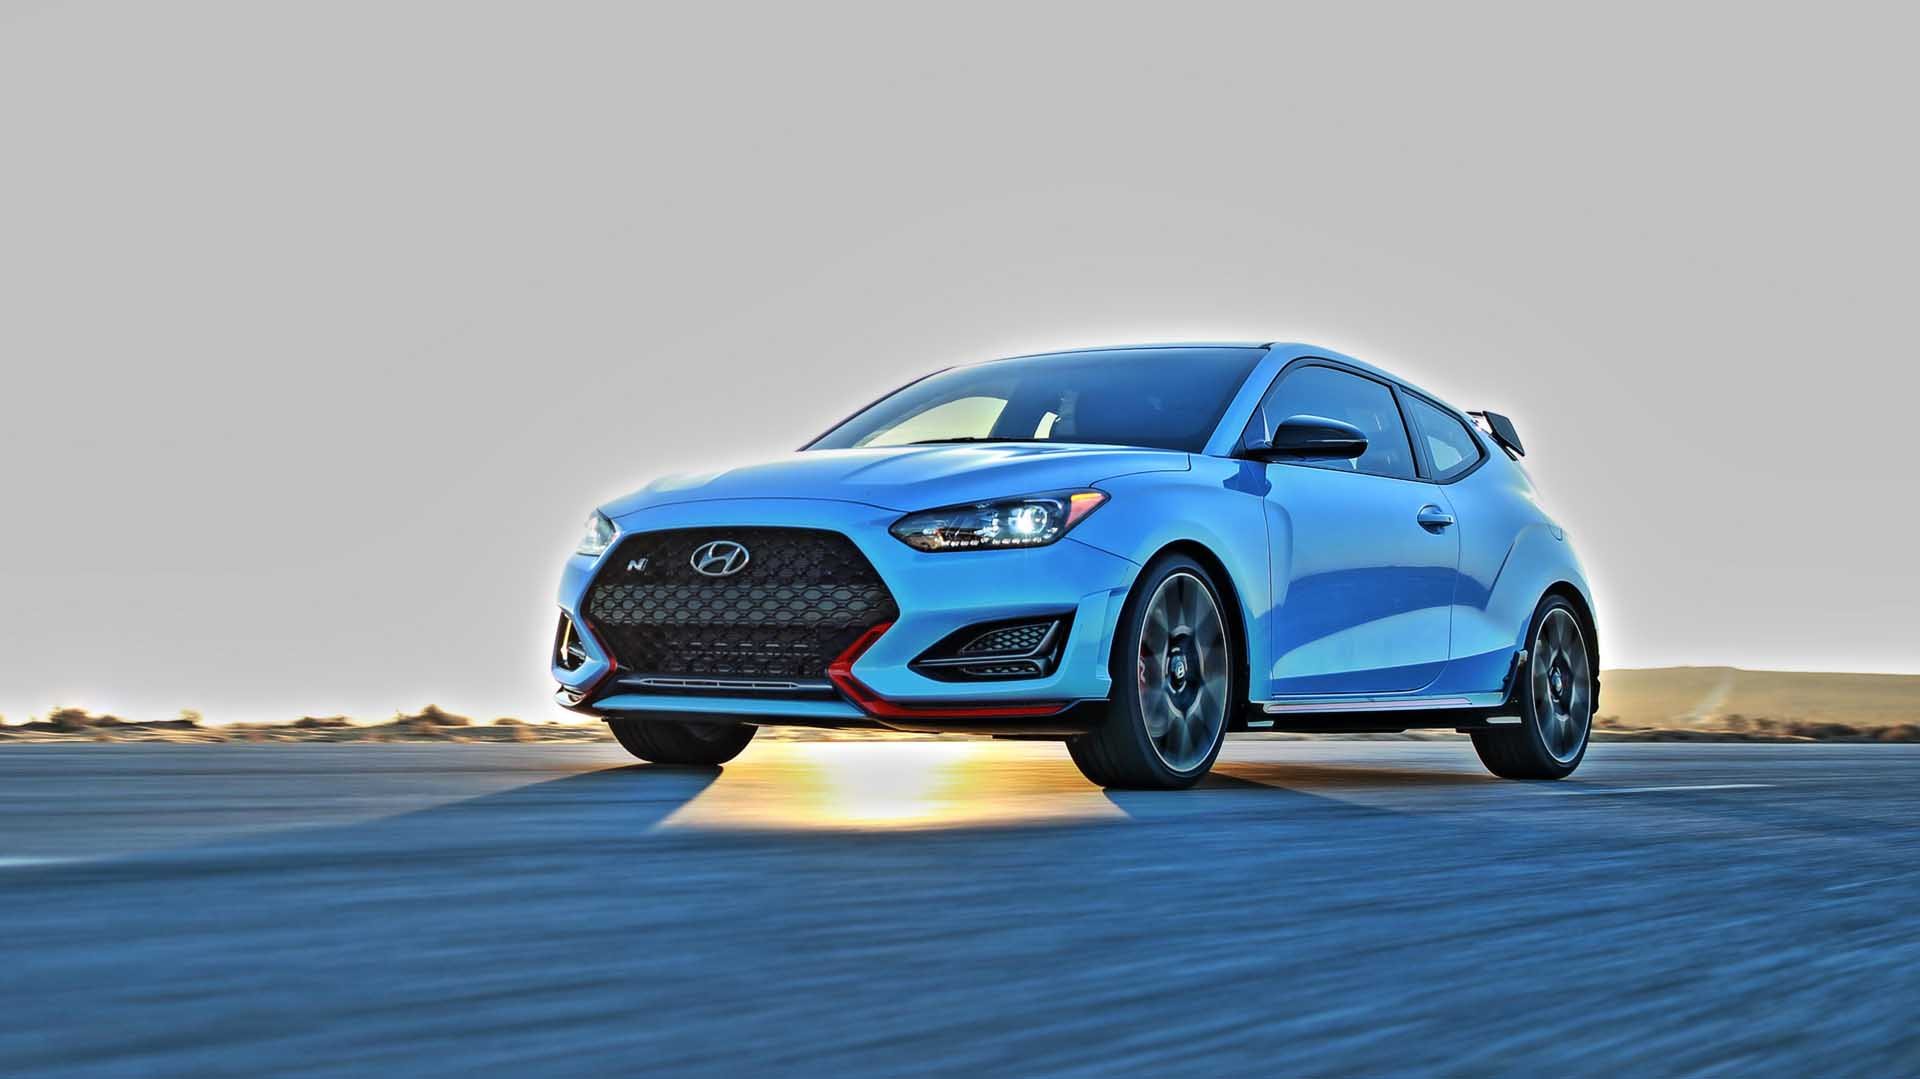 2021 Hyundai Veloster Review, Ratings, Specs, Prices, and Photos